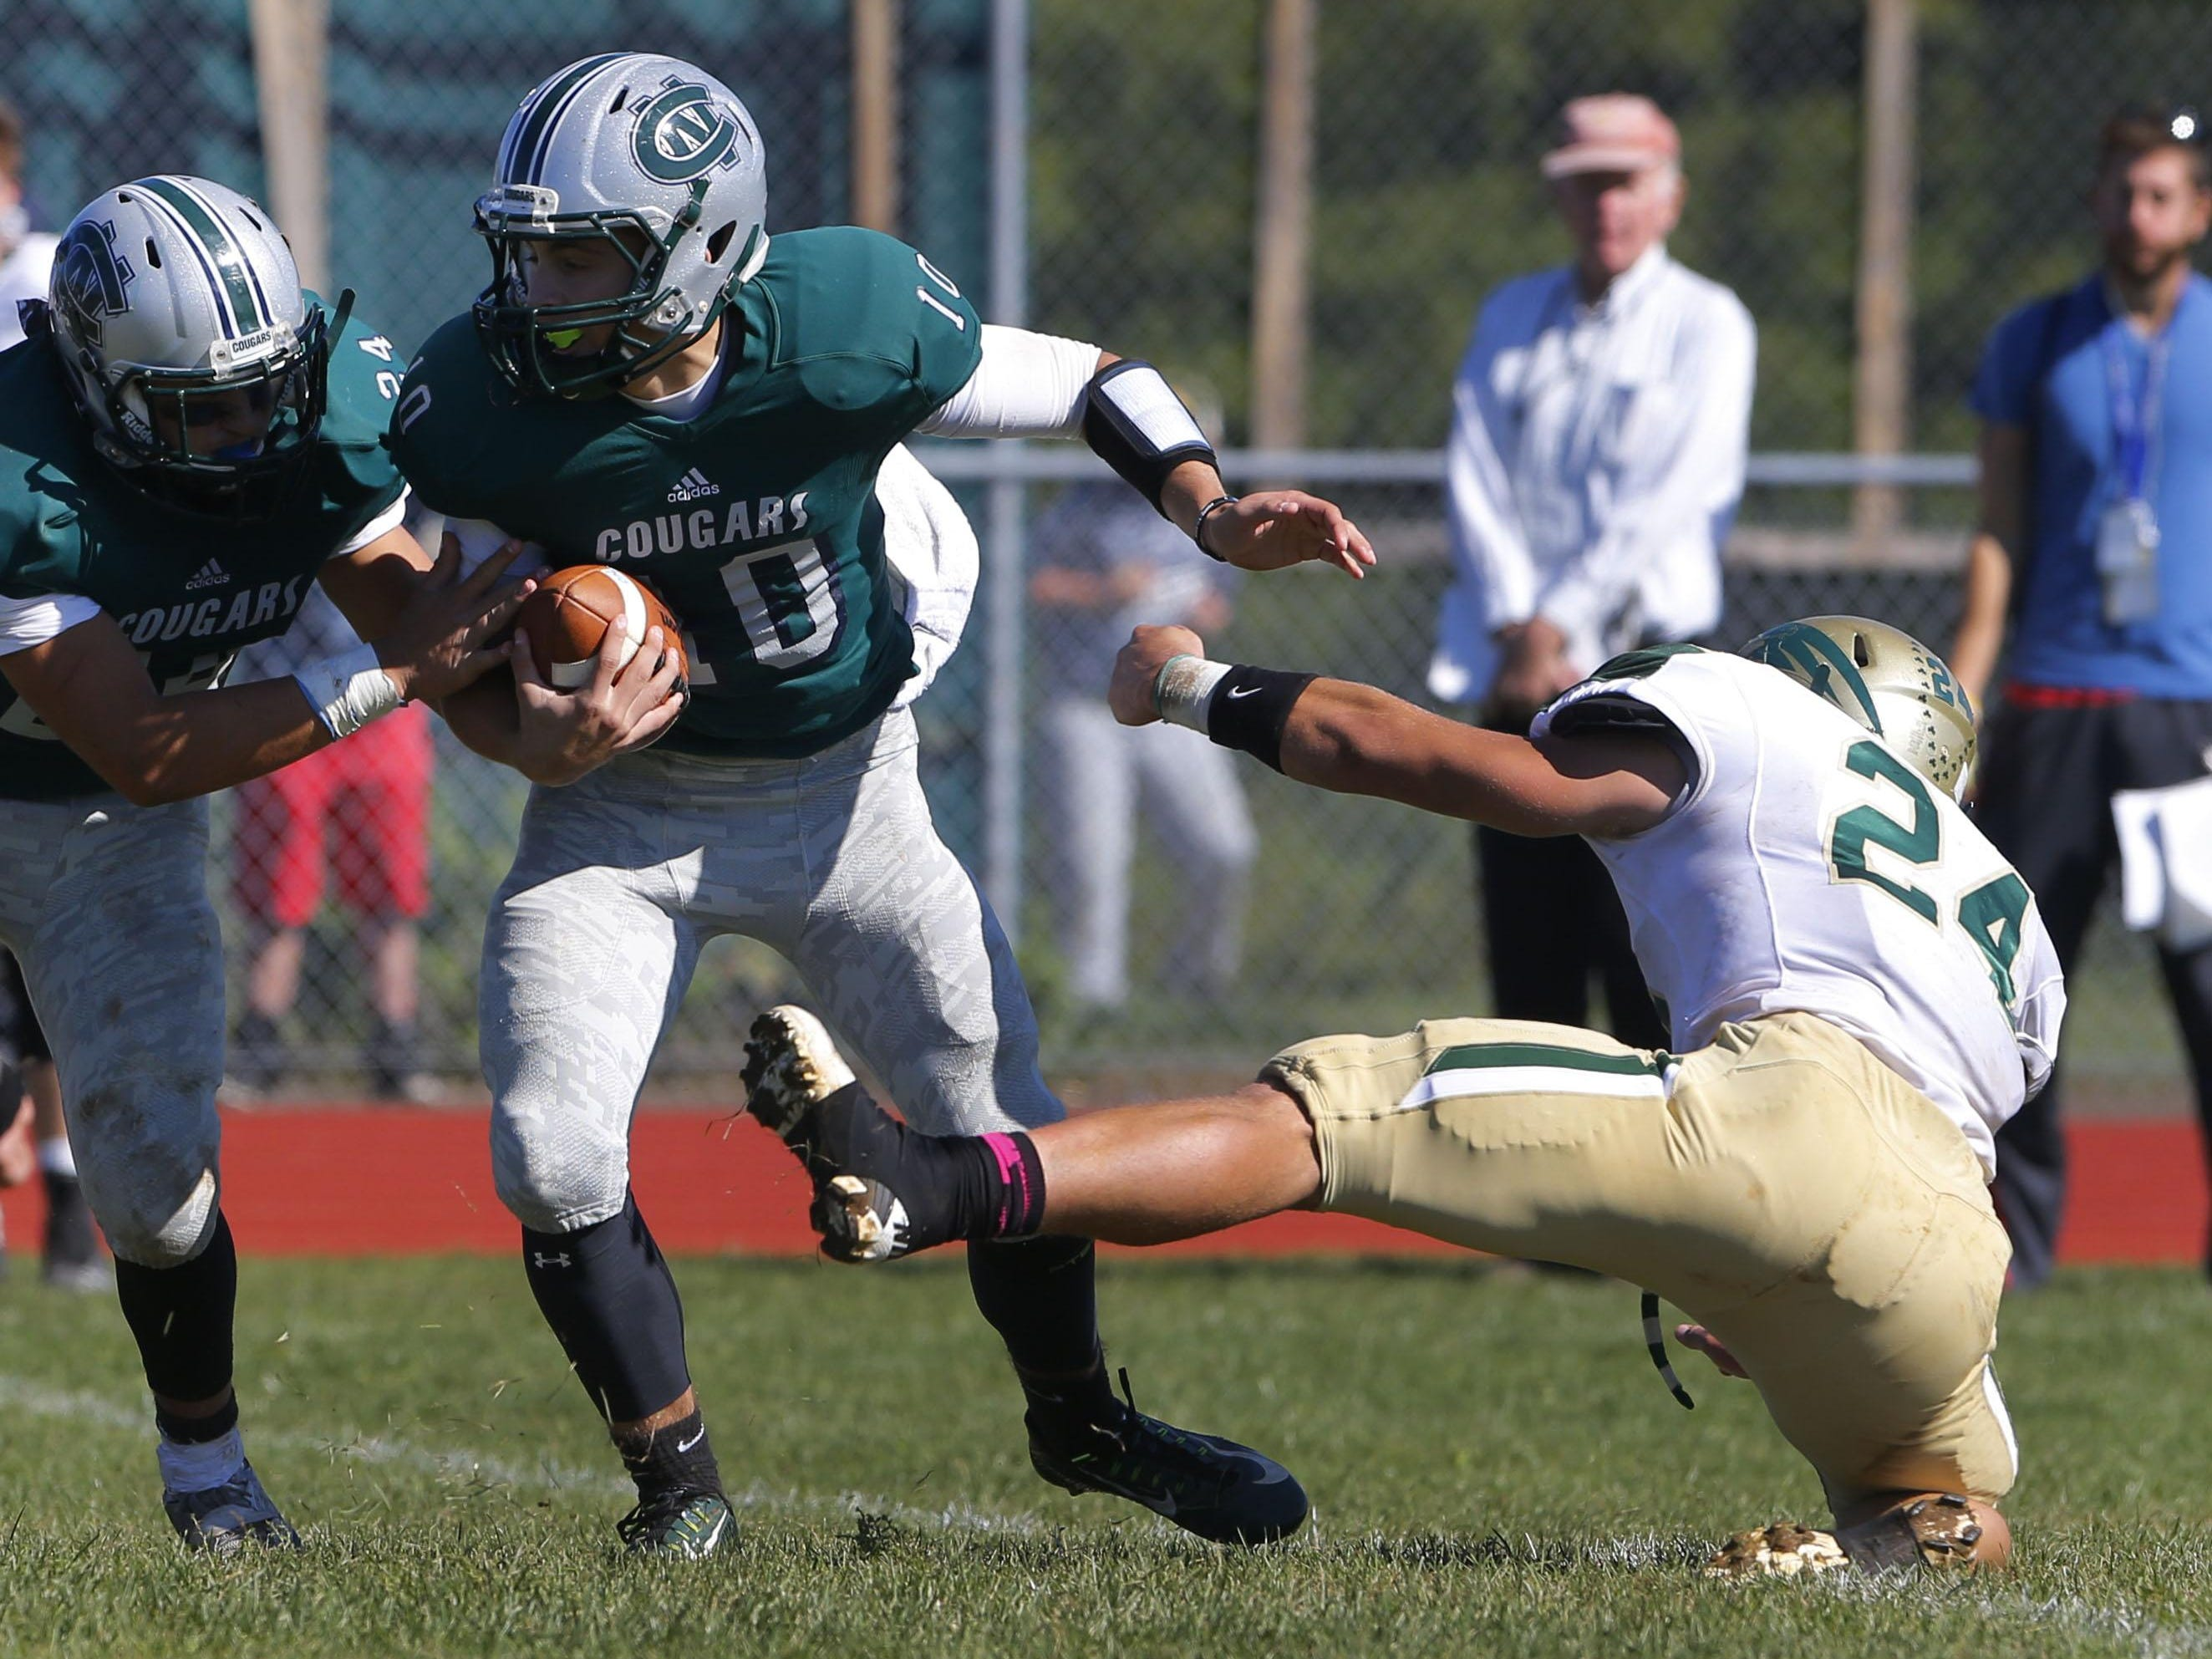 Colts Neck quarter back Hayden Volk (10) of Colts neck avoids the tackle of Dylan Murphy (24) of Red Bank Catholic at Colts Neck High School, Colts Neck,NJ. Saturday, October 10, 2015.